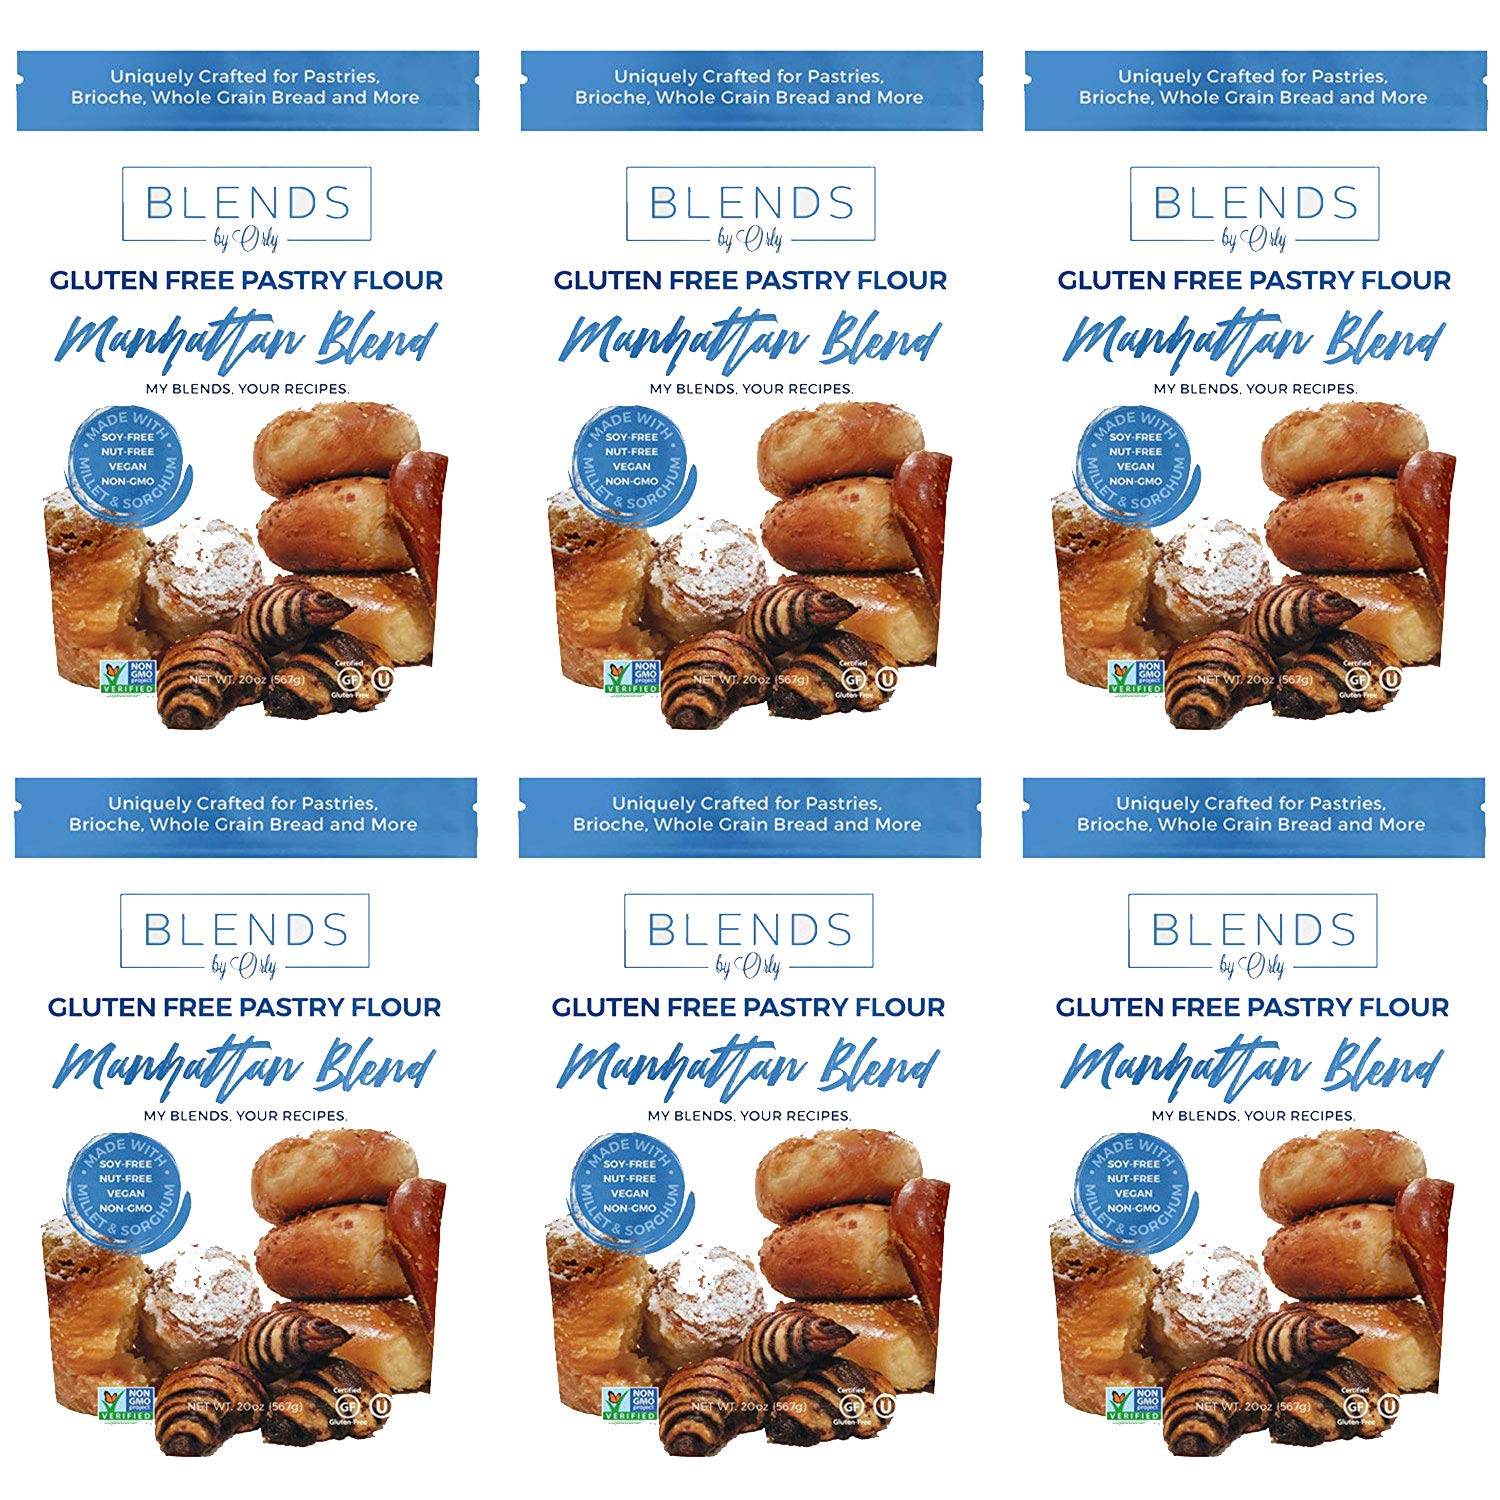 Premium Gluten Free Pastry Flour | Gluten Free Donut Flour - Baking Flour for Gluten Free Challah Bread, GF Brioche Bread, GF Cinnamon Roll, GF Bagels from Manhattan Blends by Orly 120 OZ (Pack of 6) by Blends By Orly